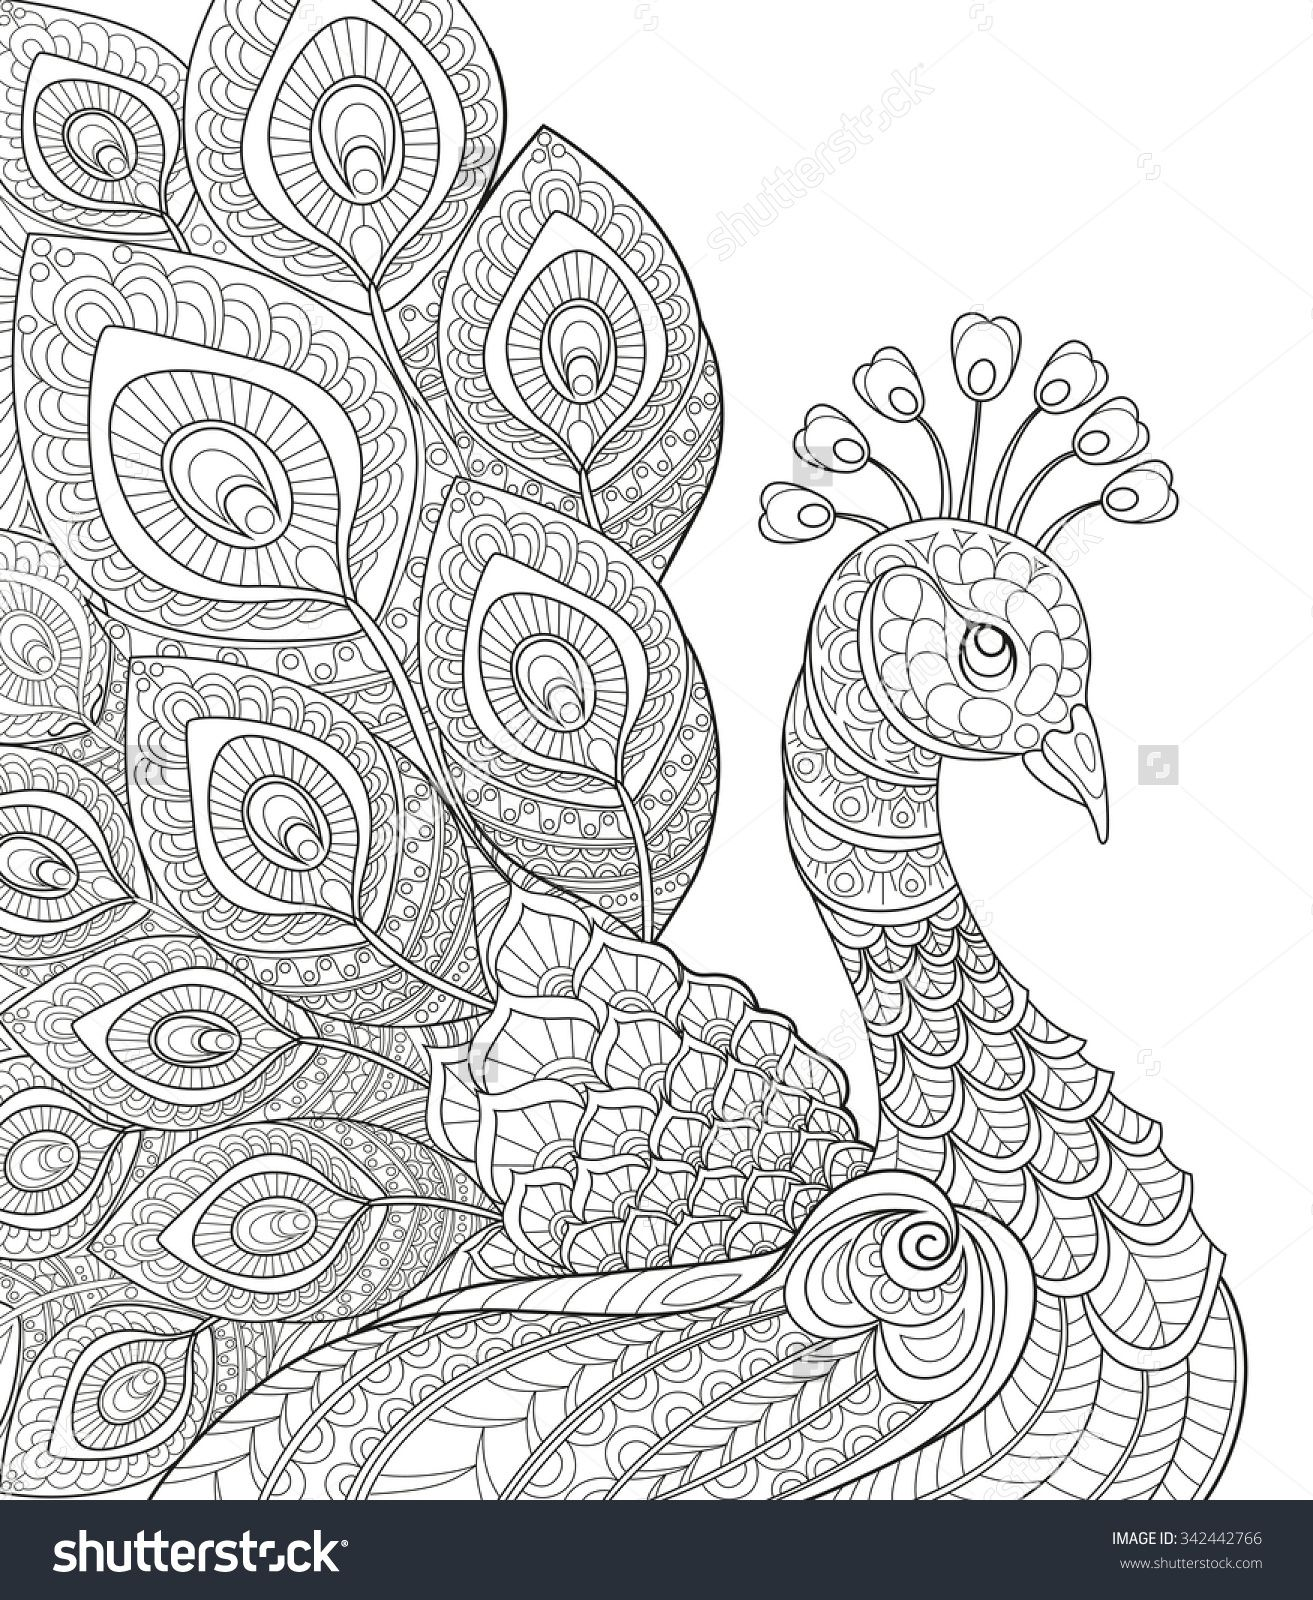 Peacock Adult Antistress Coloring